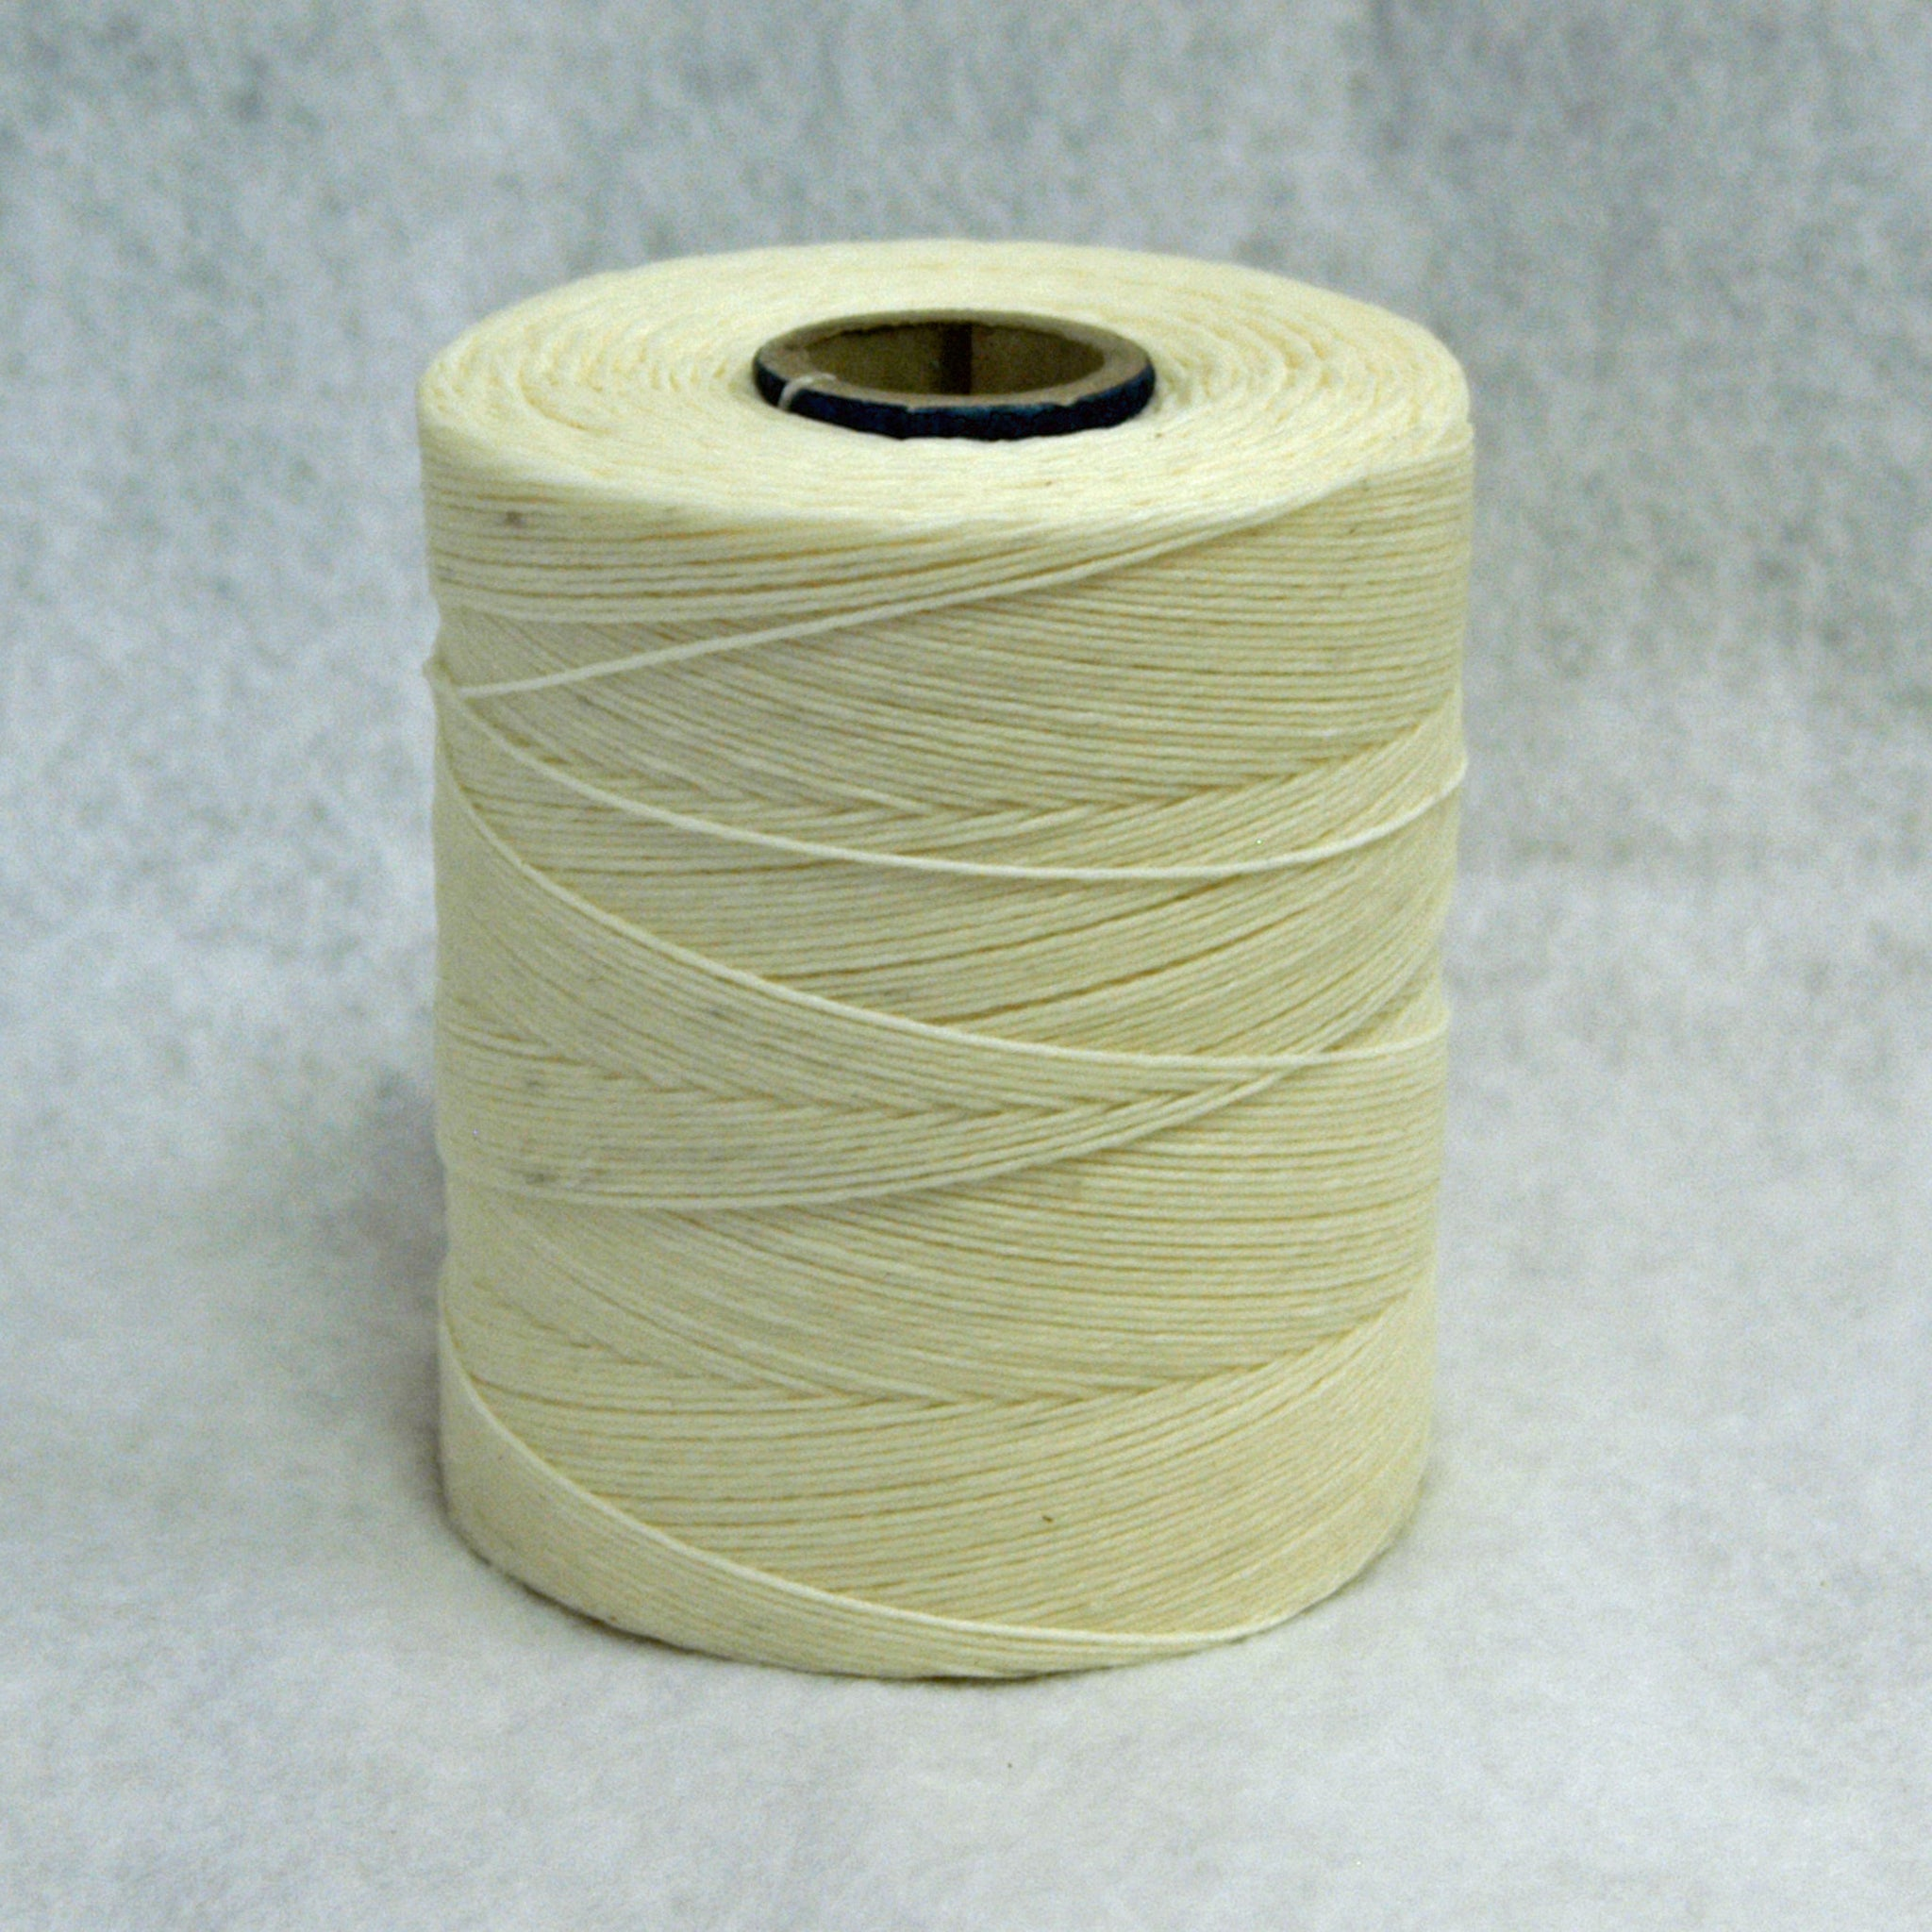 Bee's Wax Coated Linen Twine - Bulk 4, 5, 6, or 7 Cord